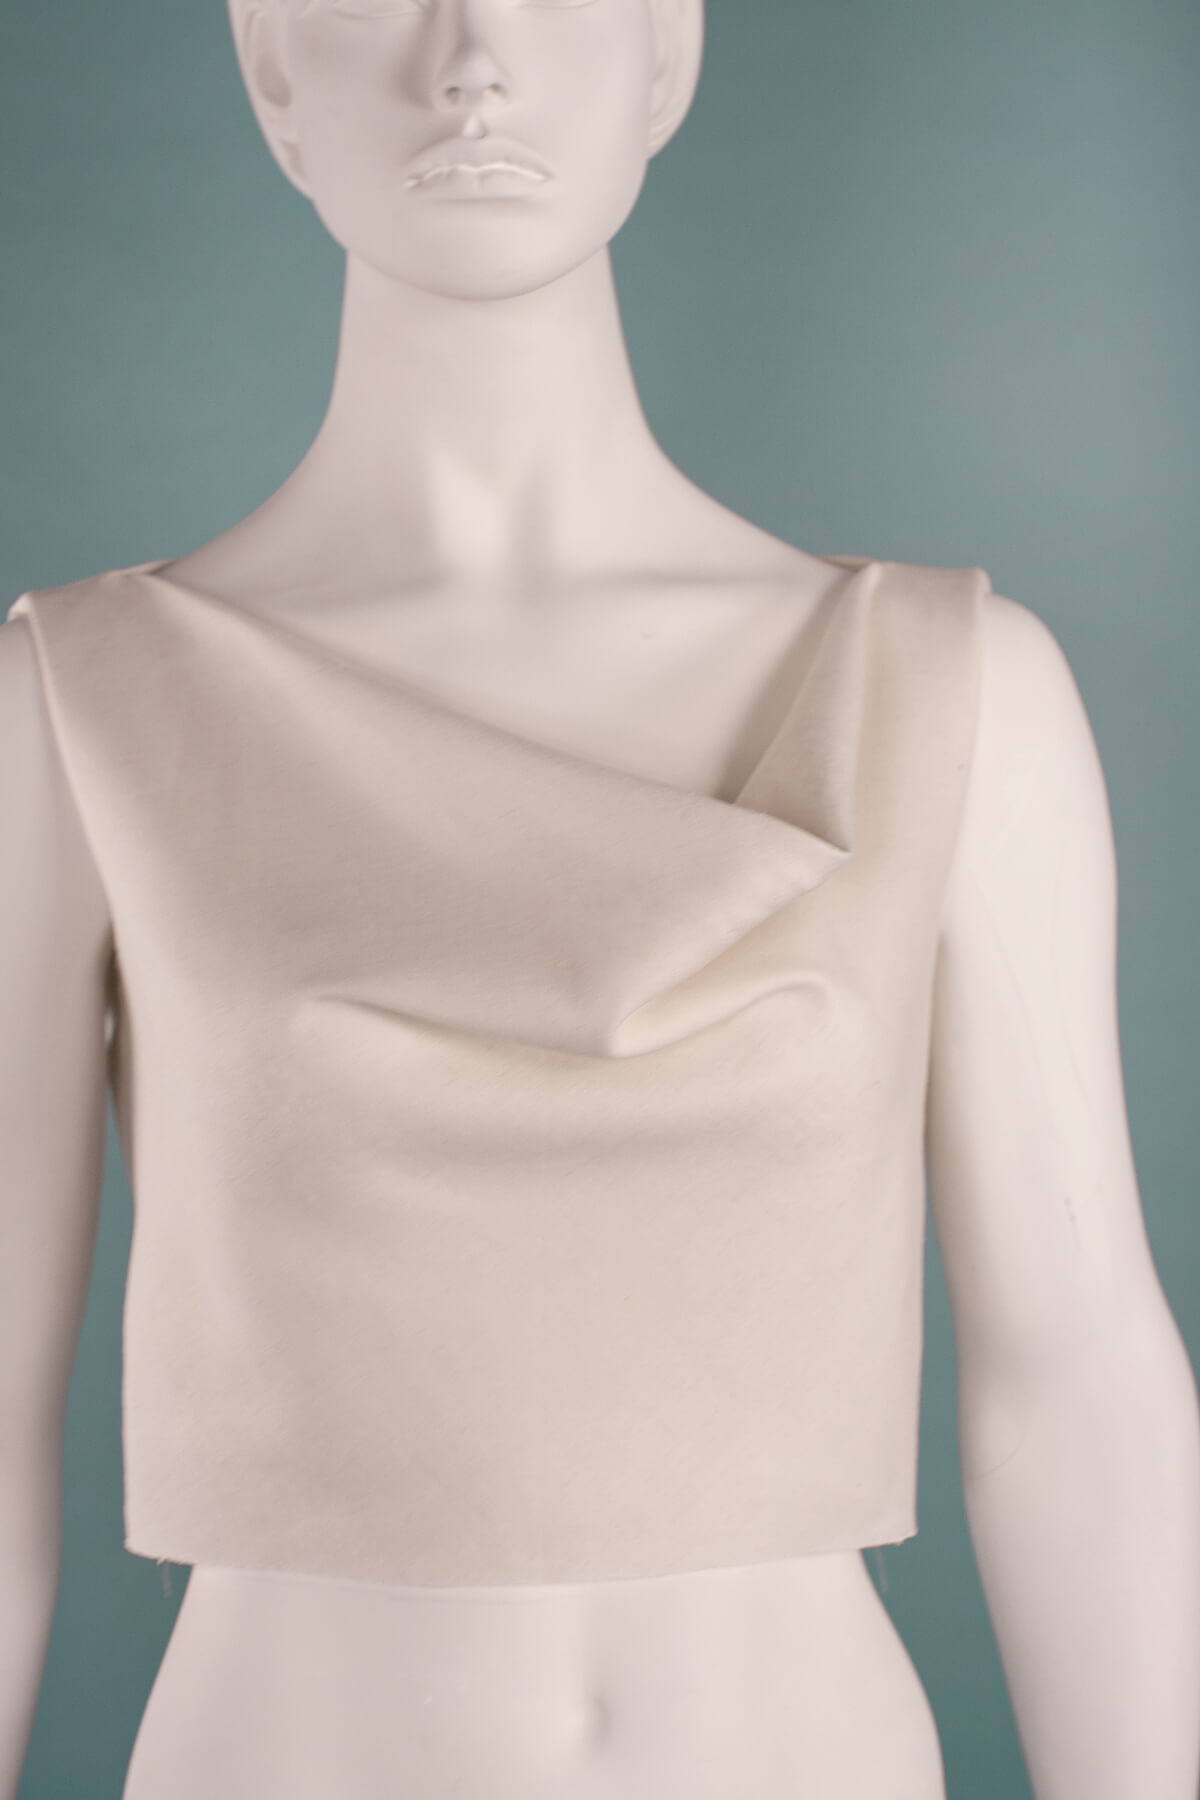 Cowl Neck Pattern Making Tutorial Free Video Courses Tutorials